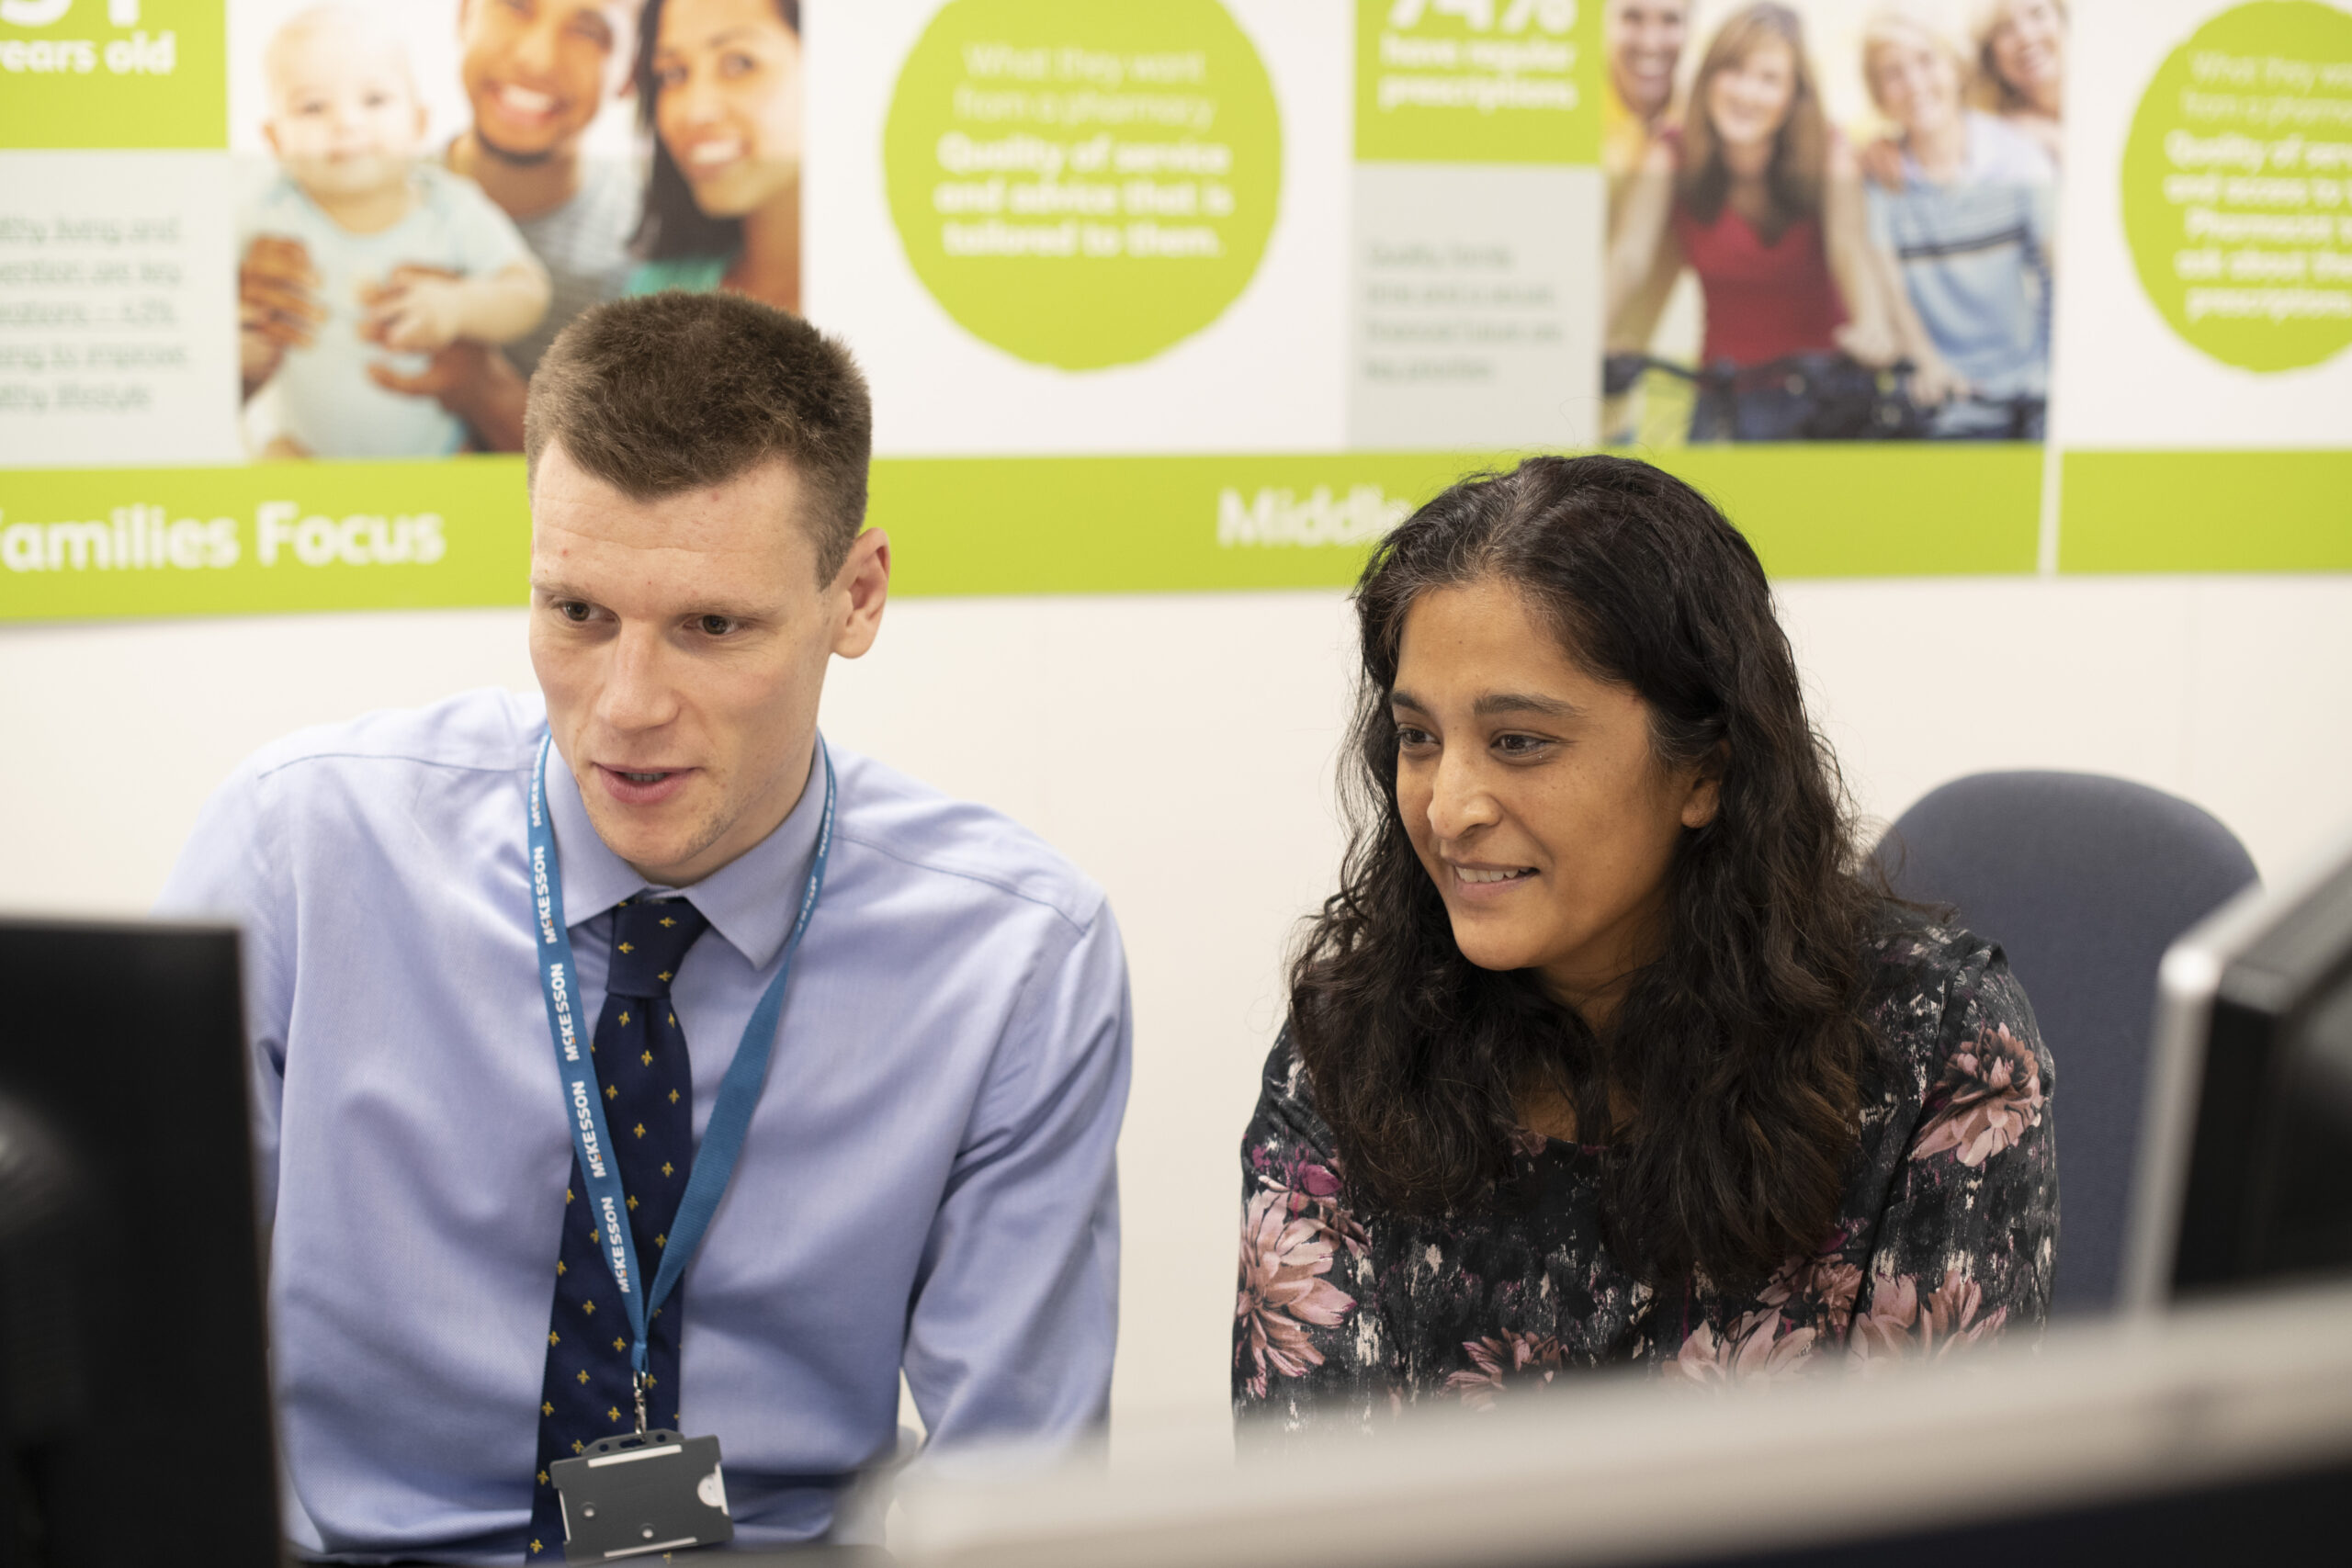 McKesson UK publishes its Gender Pay Gap Report for 2020